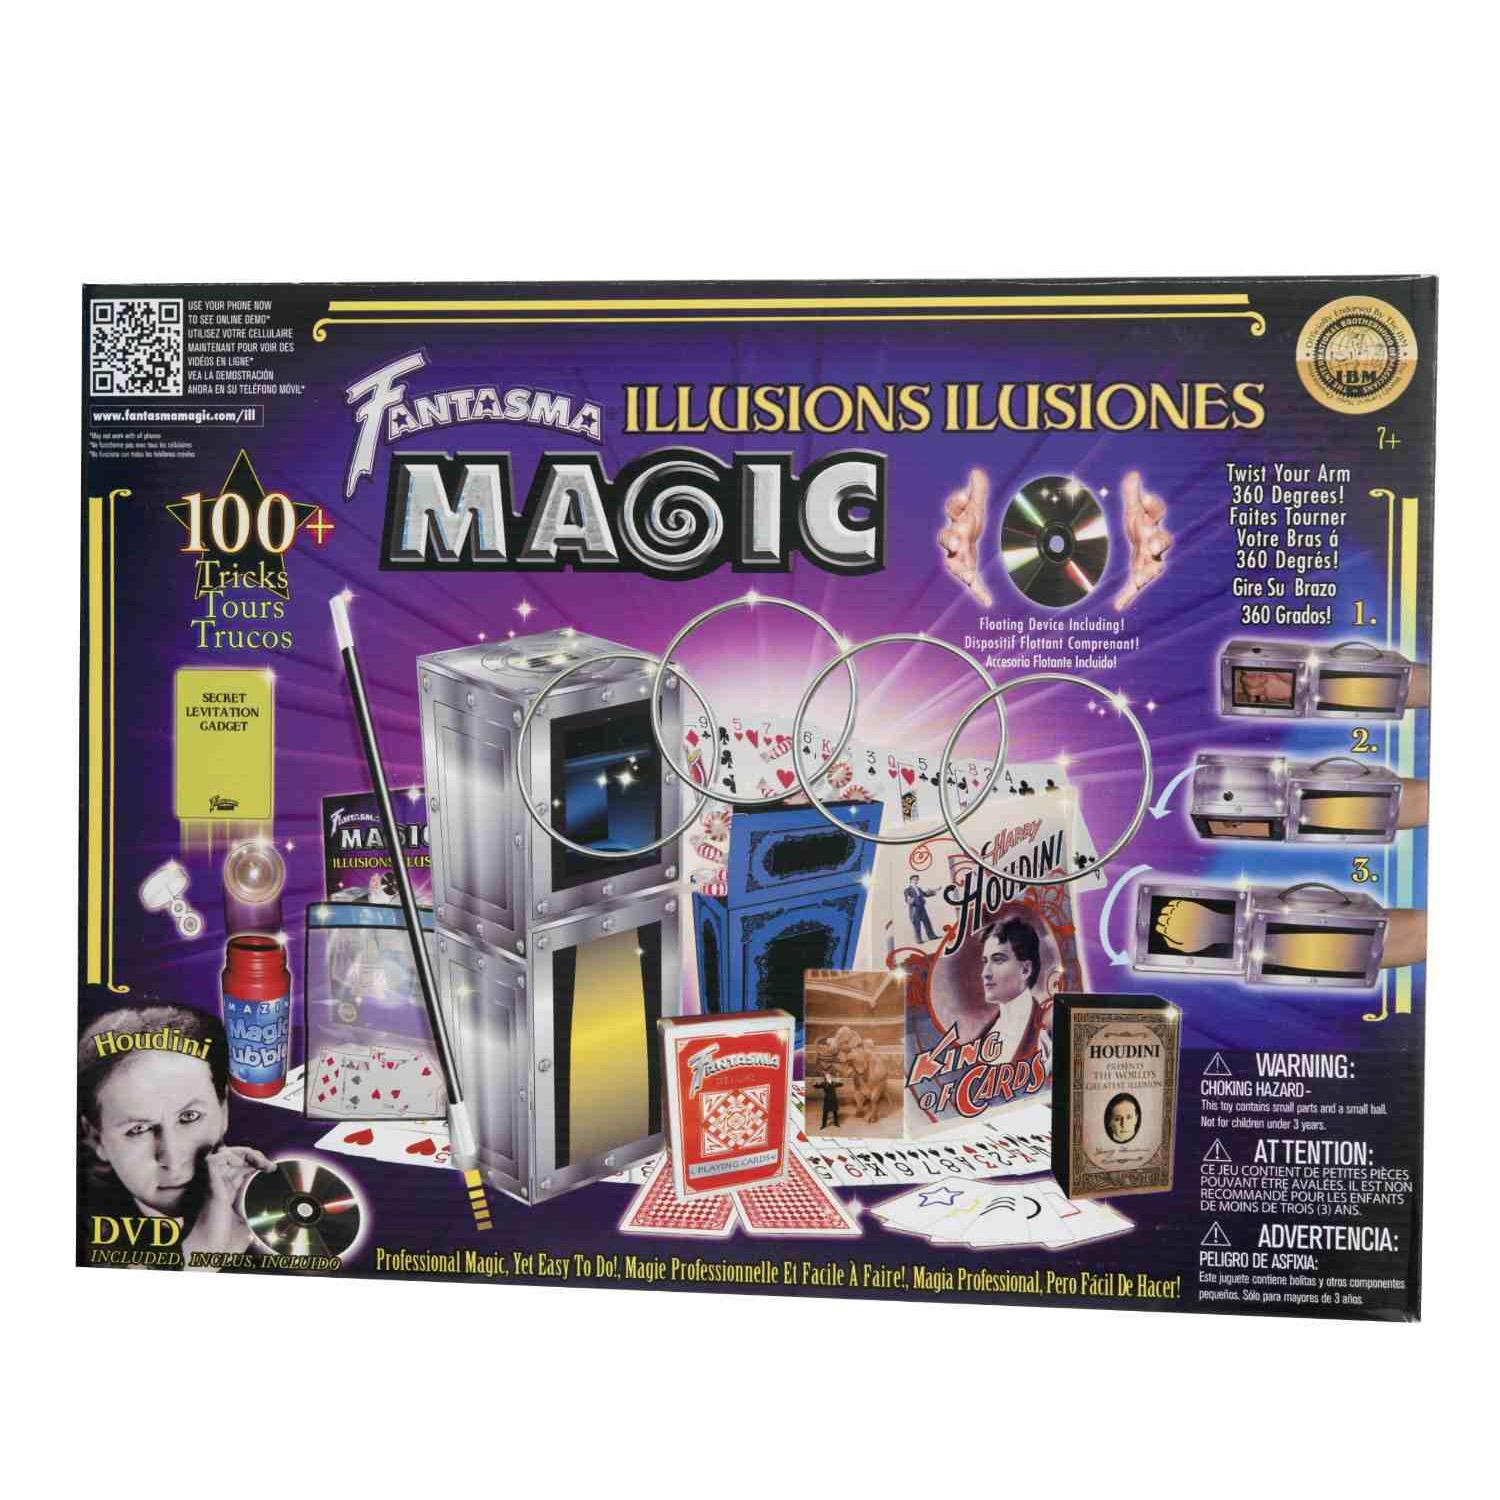 Seems excellent Adult illusionists magic assured, what